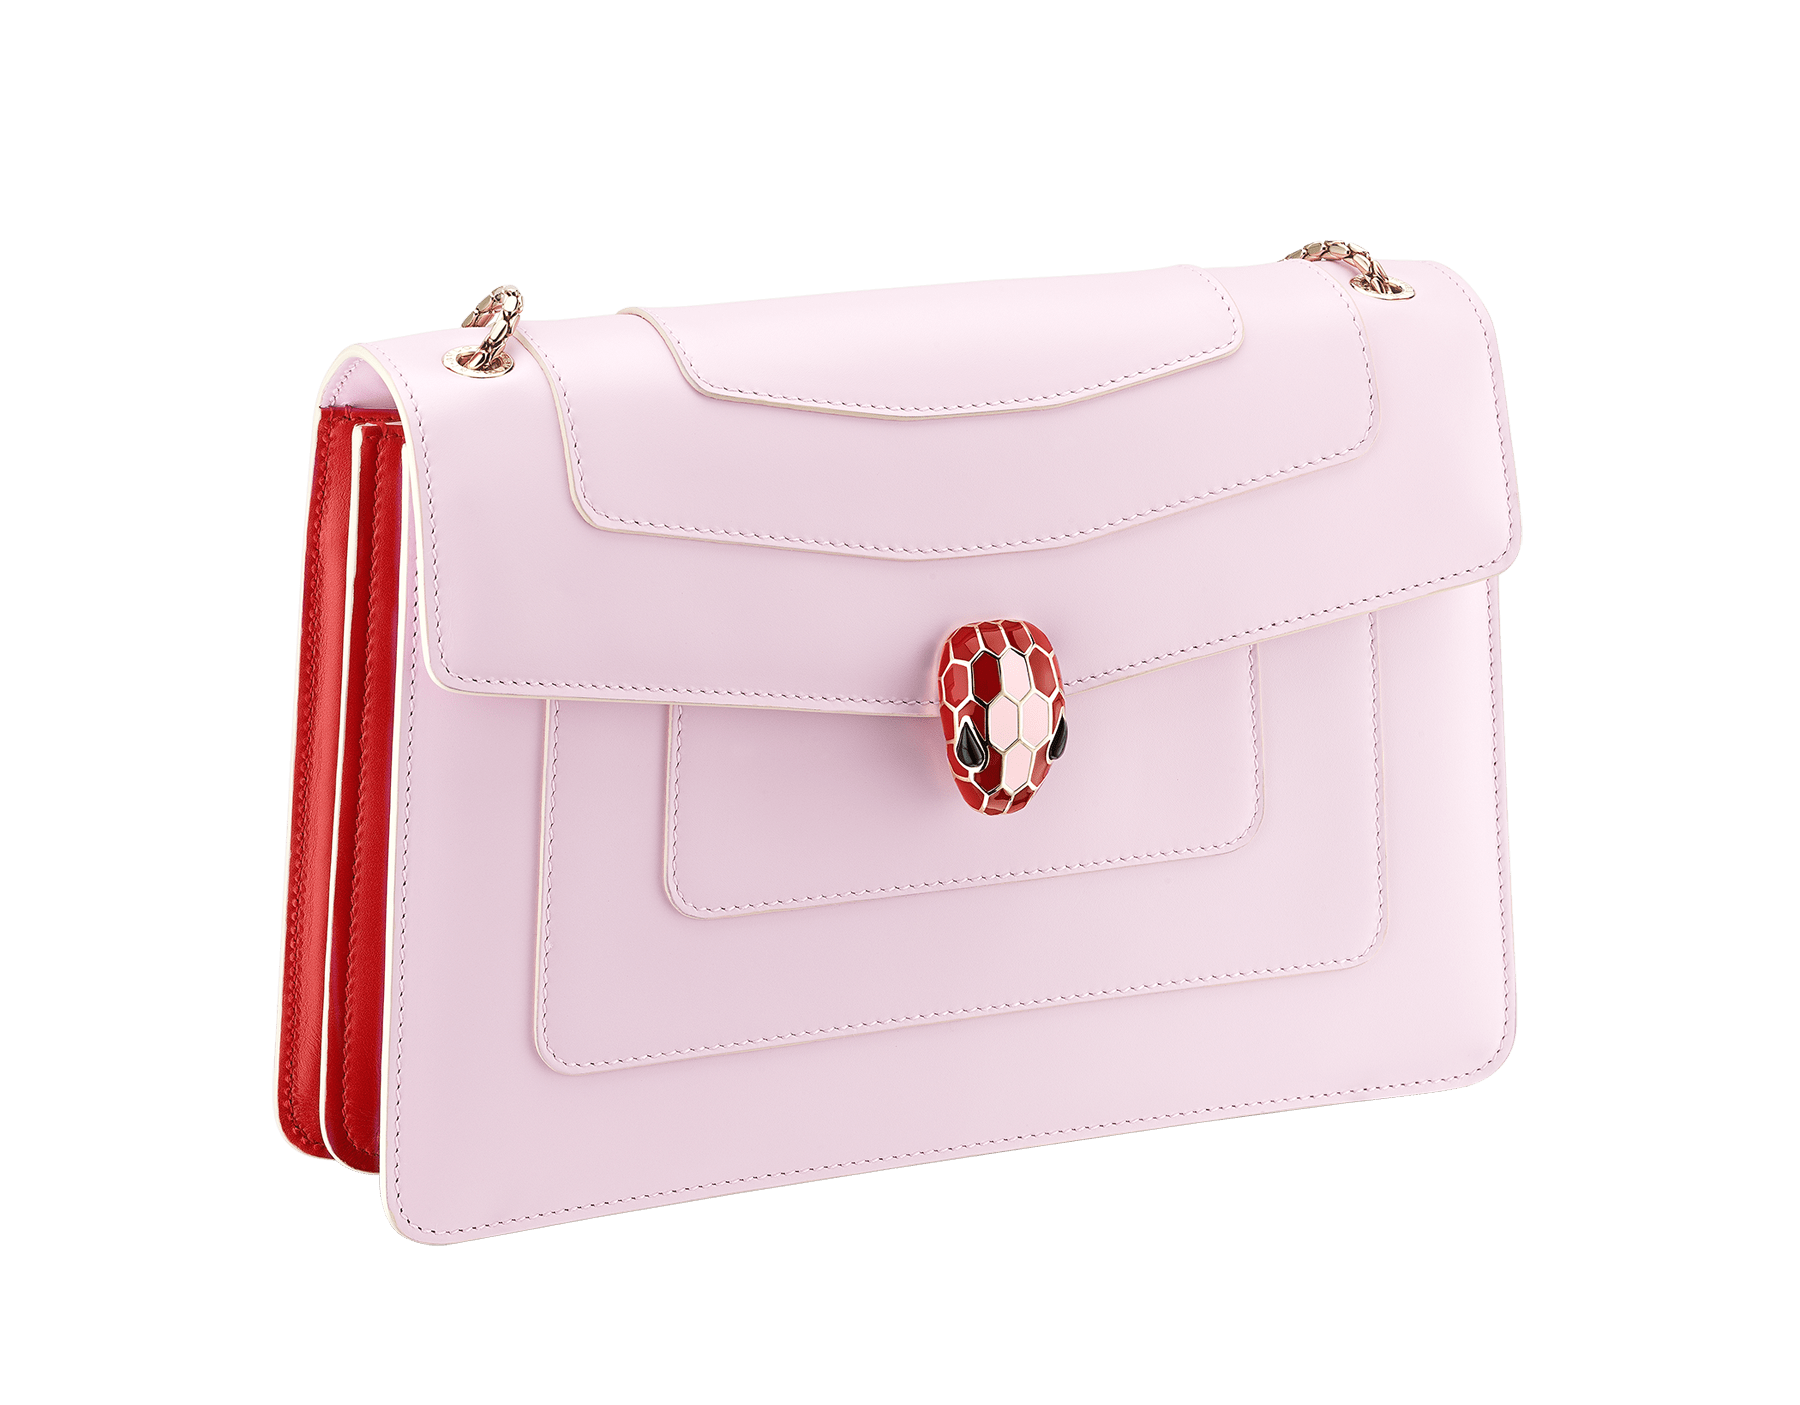 """Serpenti Forever"" shoulder bag in rosa di francia calf leather body and carmine jasper calf leather sides. Iconic snakehead closure in light gold plated brass enriched with carmine jasper and rosa di francia enamel and black onyx eyes. 289162 image 2"